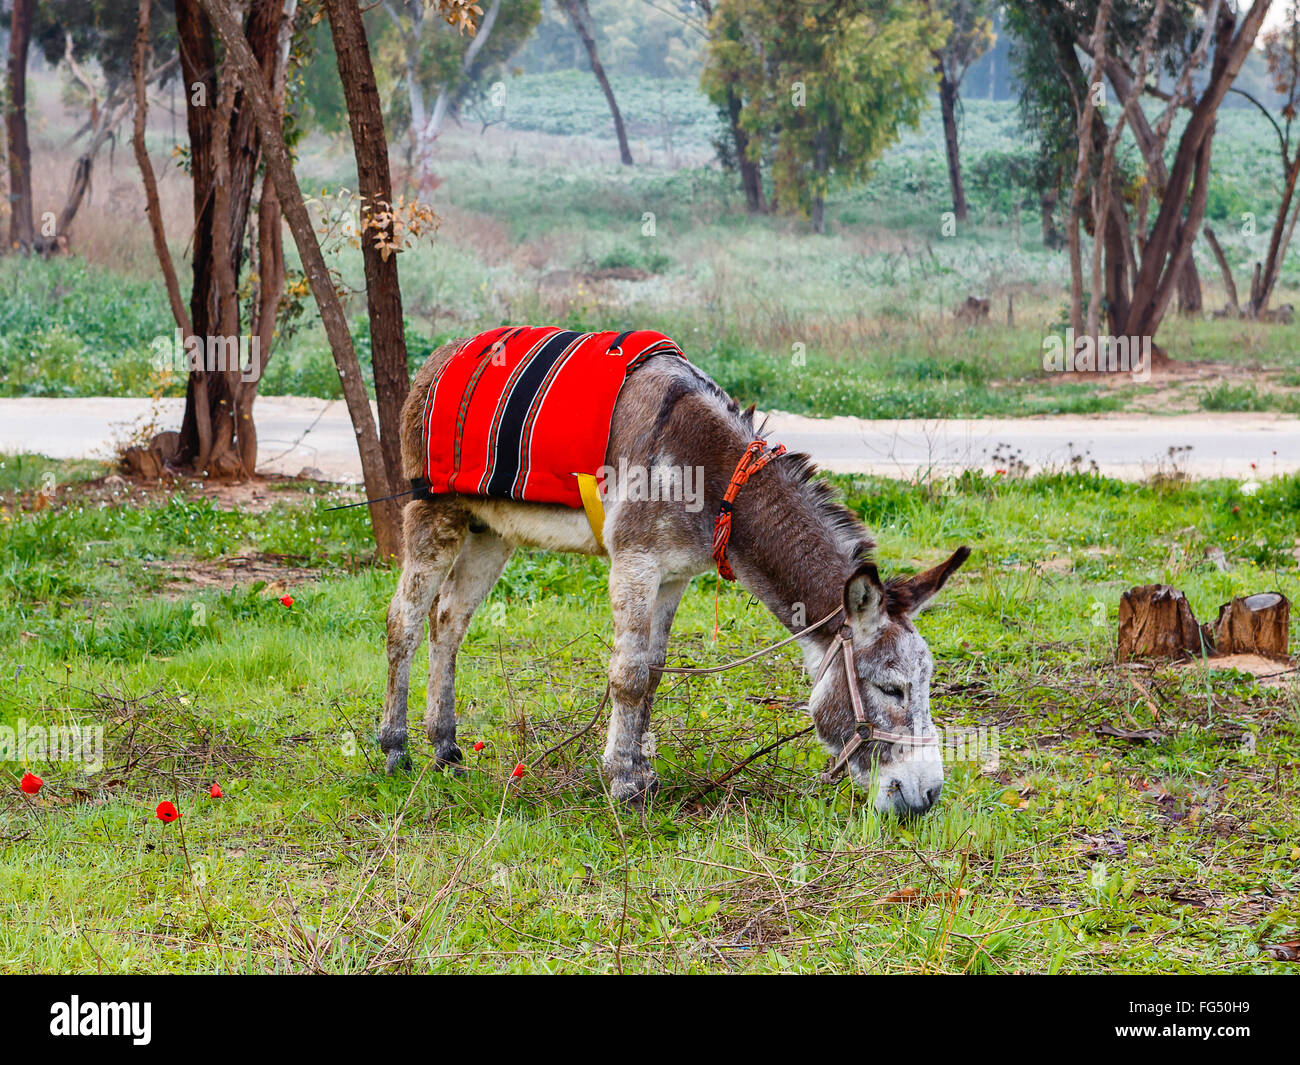 A donkey in harness and red blanket on green glade with anemones - Stock Image